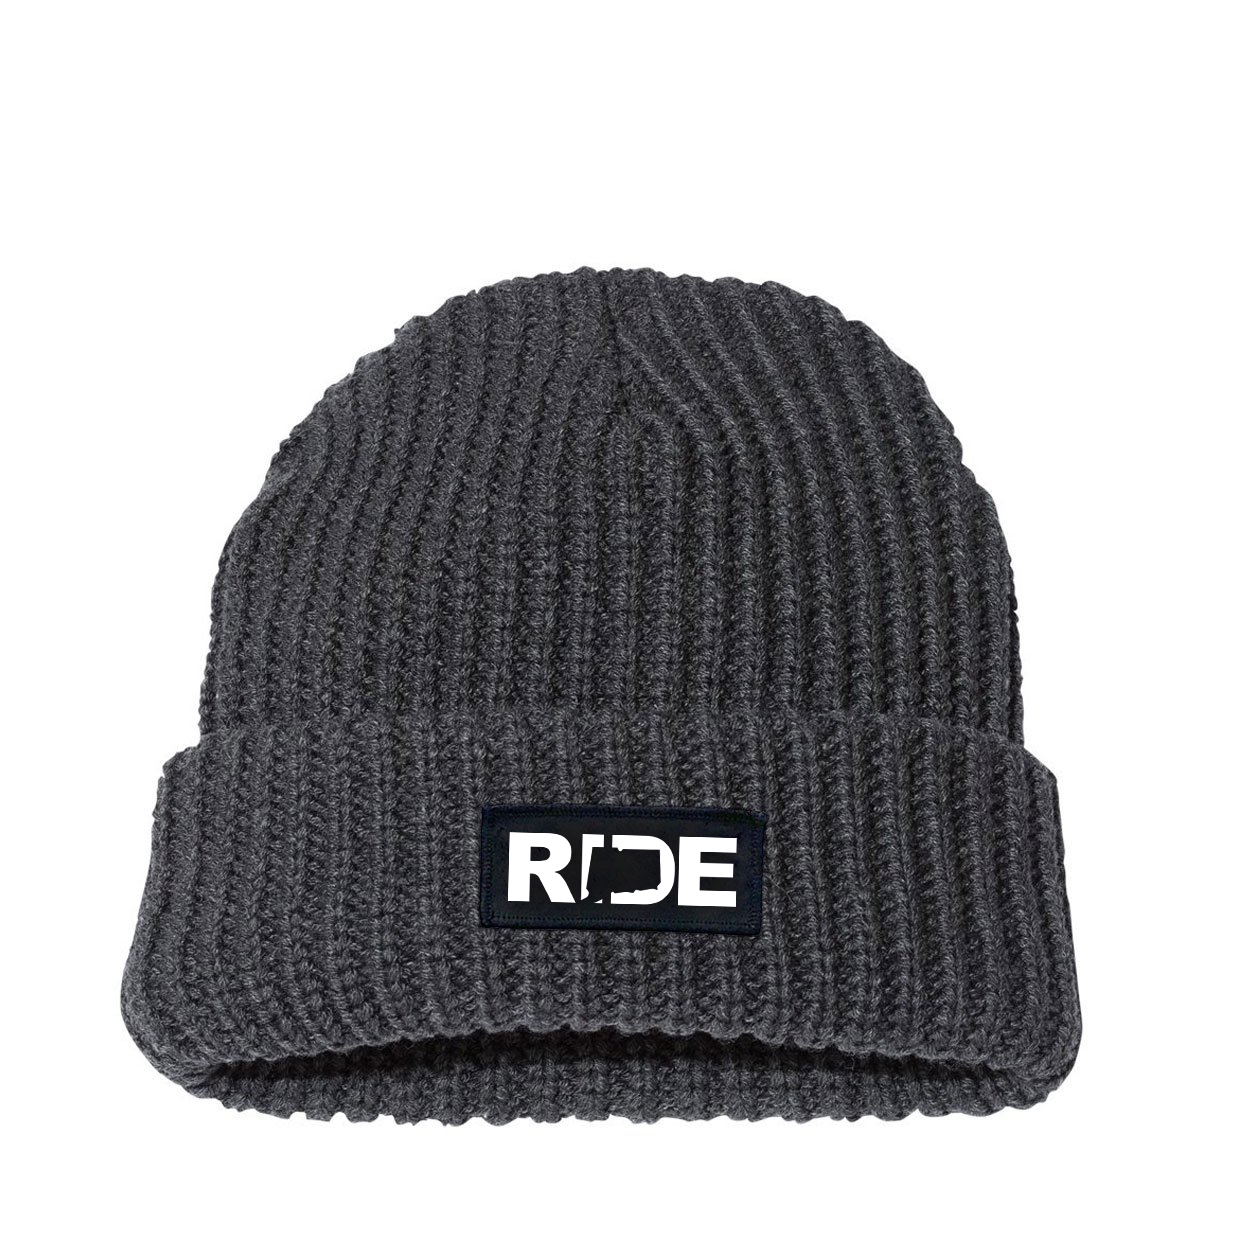 Ride Connecticut Night Out Woven Patch Roll Up Jumbo Chunky Knit Beanie Charcoal (White Logo)